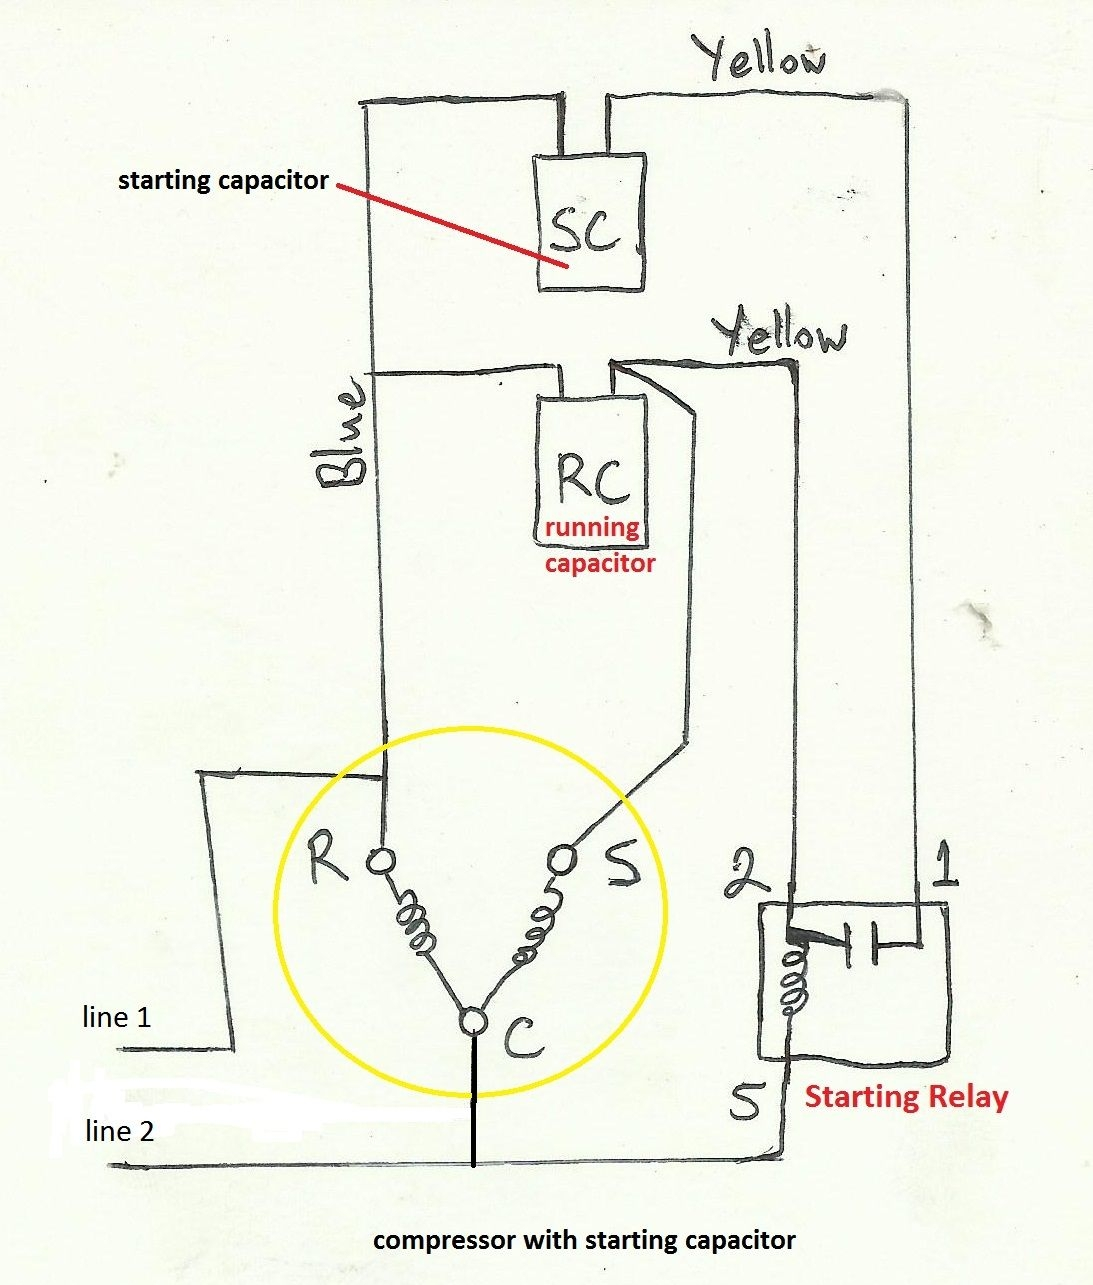 electric motor capacitor wiring diagram Download-Electric Motor Capacitor Wiring Diagram Air Pressor Capacitor Wiring Diagram before You Call A Ac 17-b